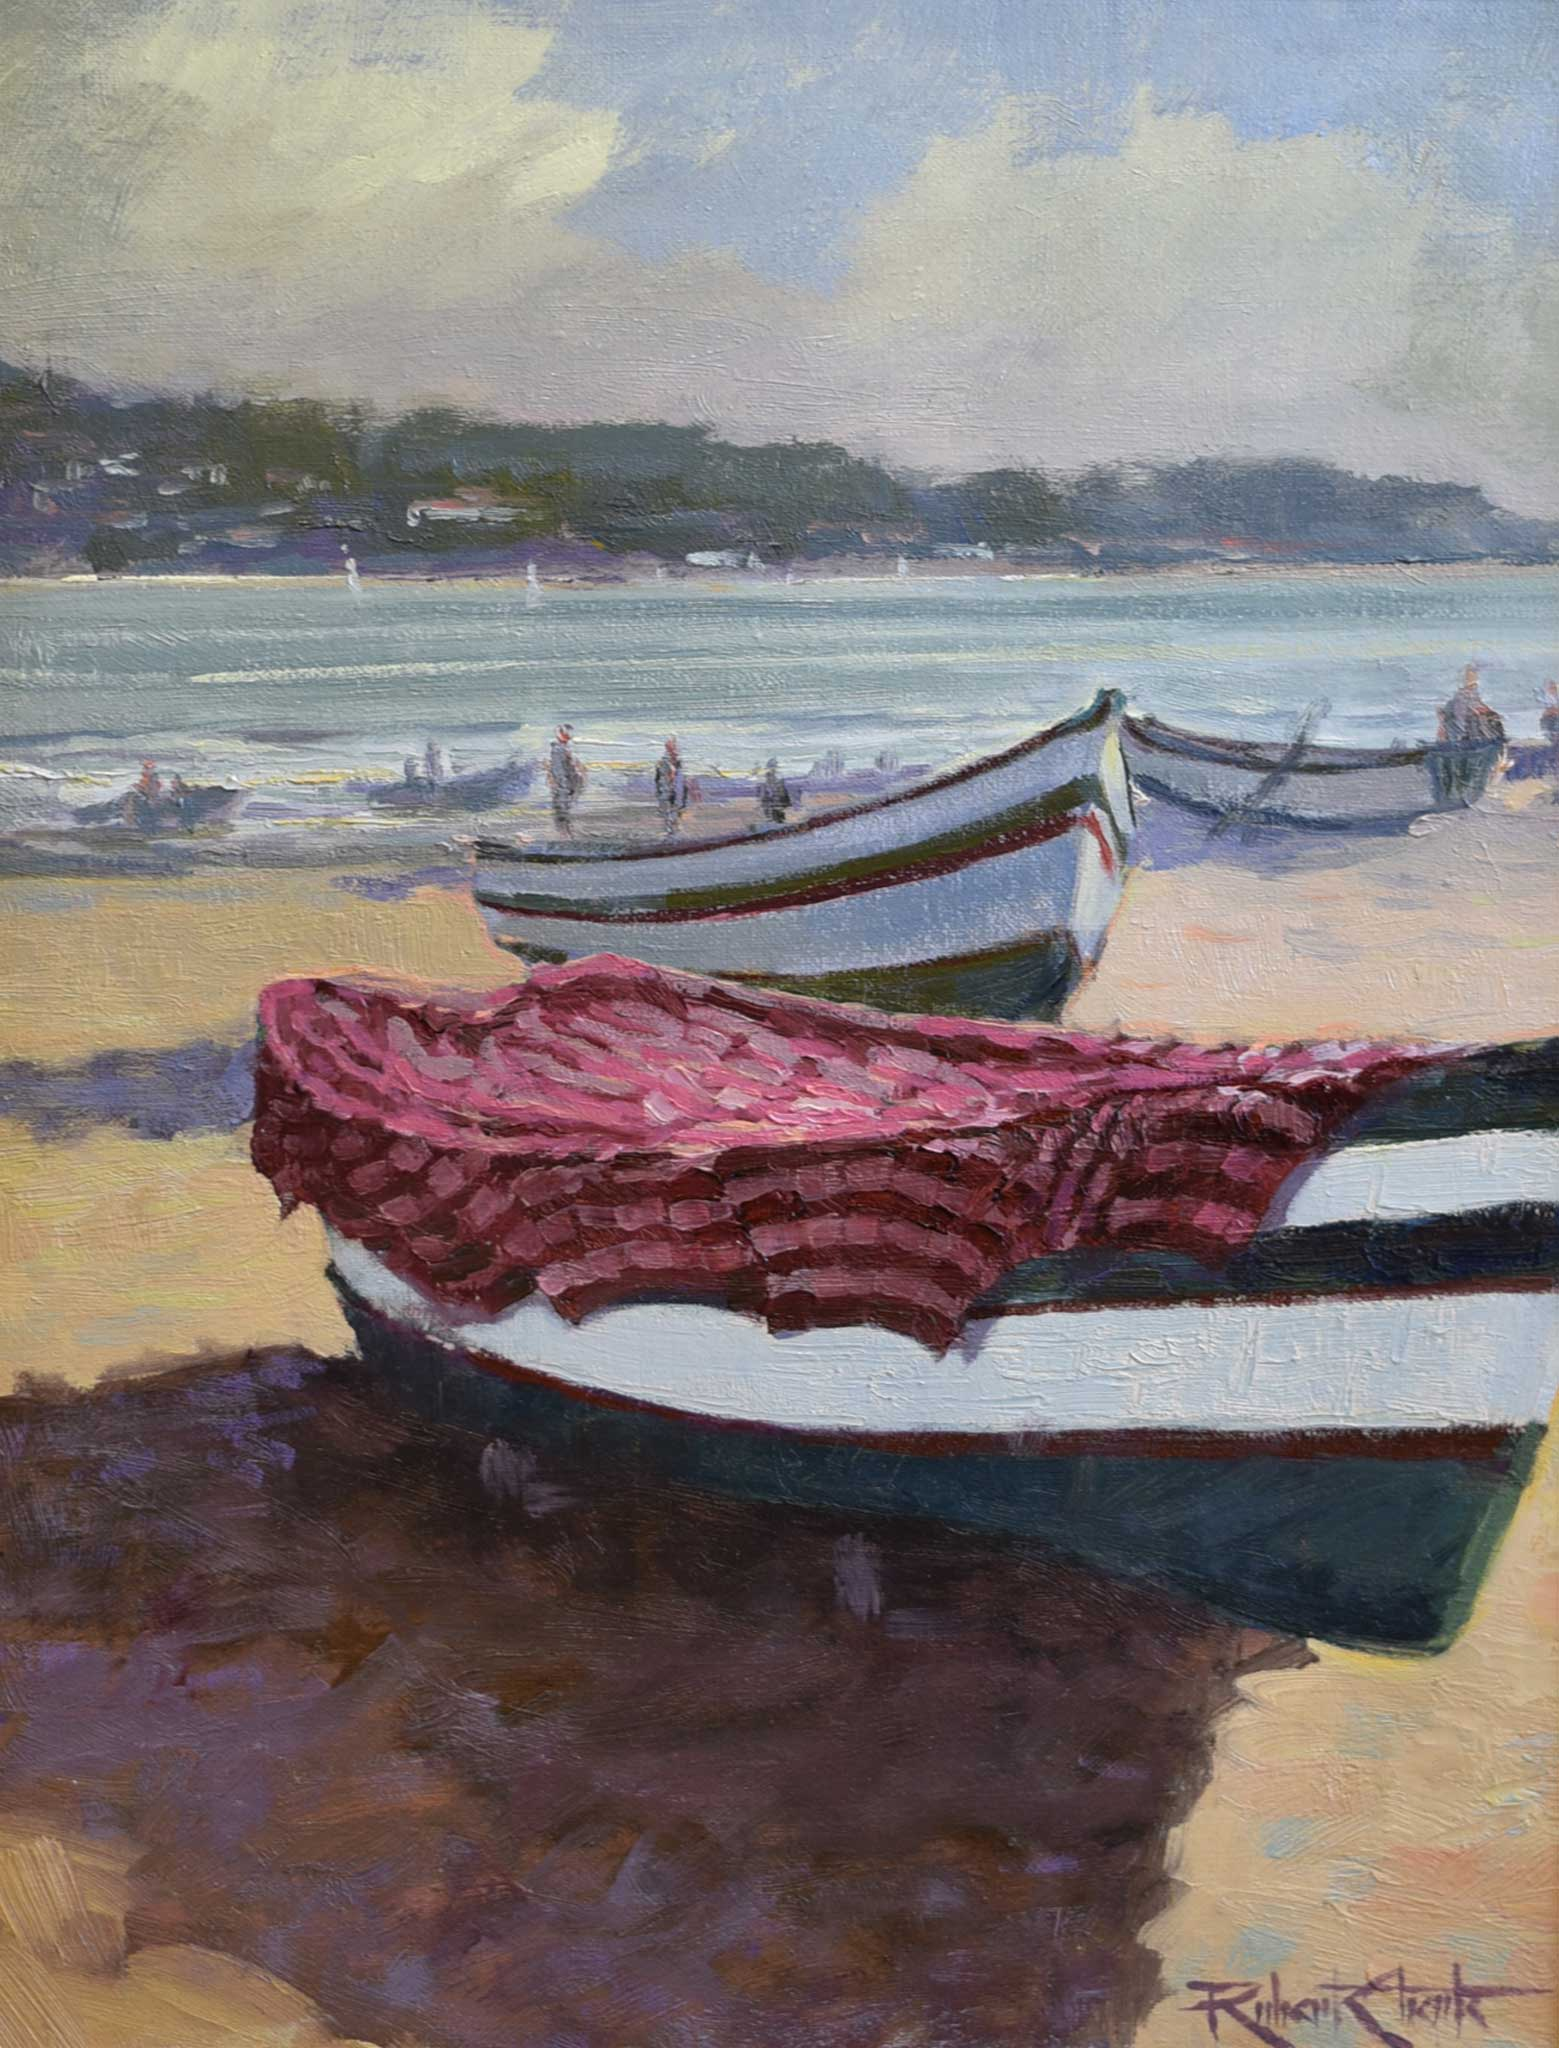 "Painting: Fishing Boats Artist: Robert Eberle Medium: Oil   Size: 25"" x 21"", framed"